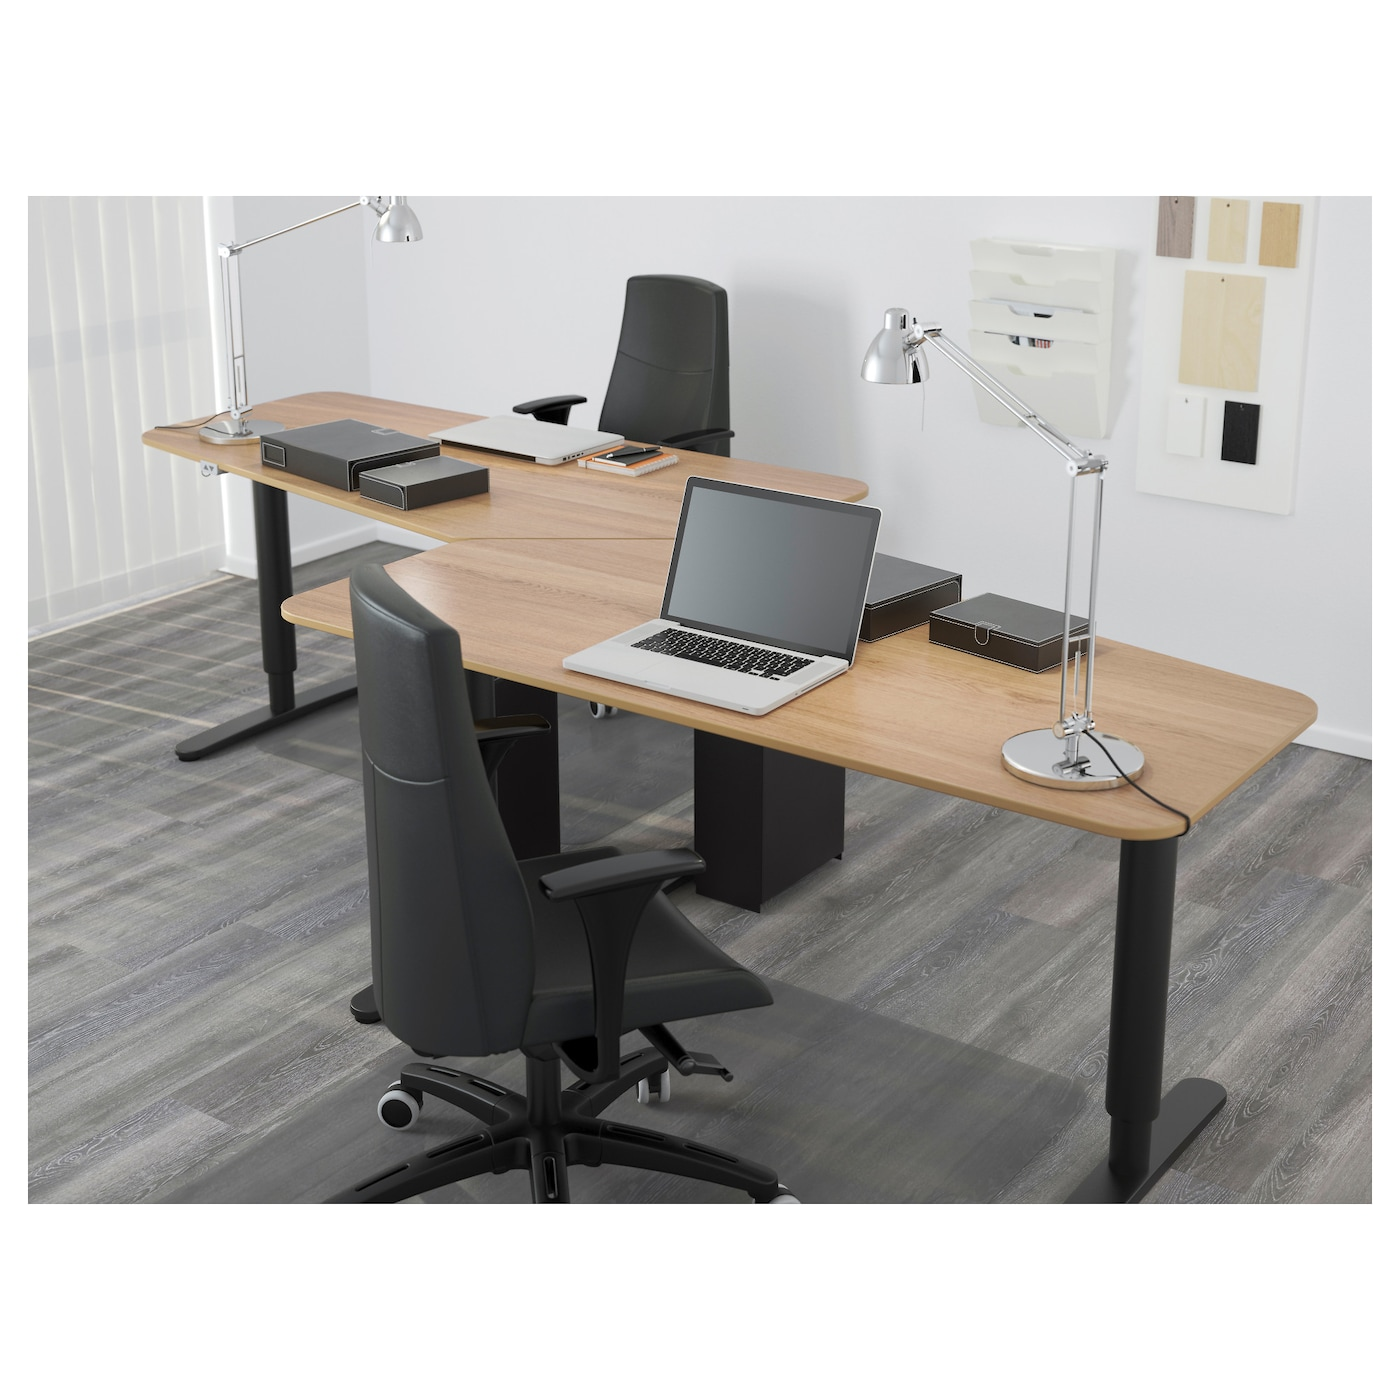 BEKANT 5-sided Desk Sit/stand Oak Veneer/black 160x80 Cm